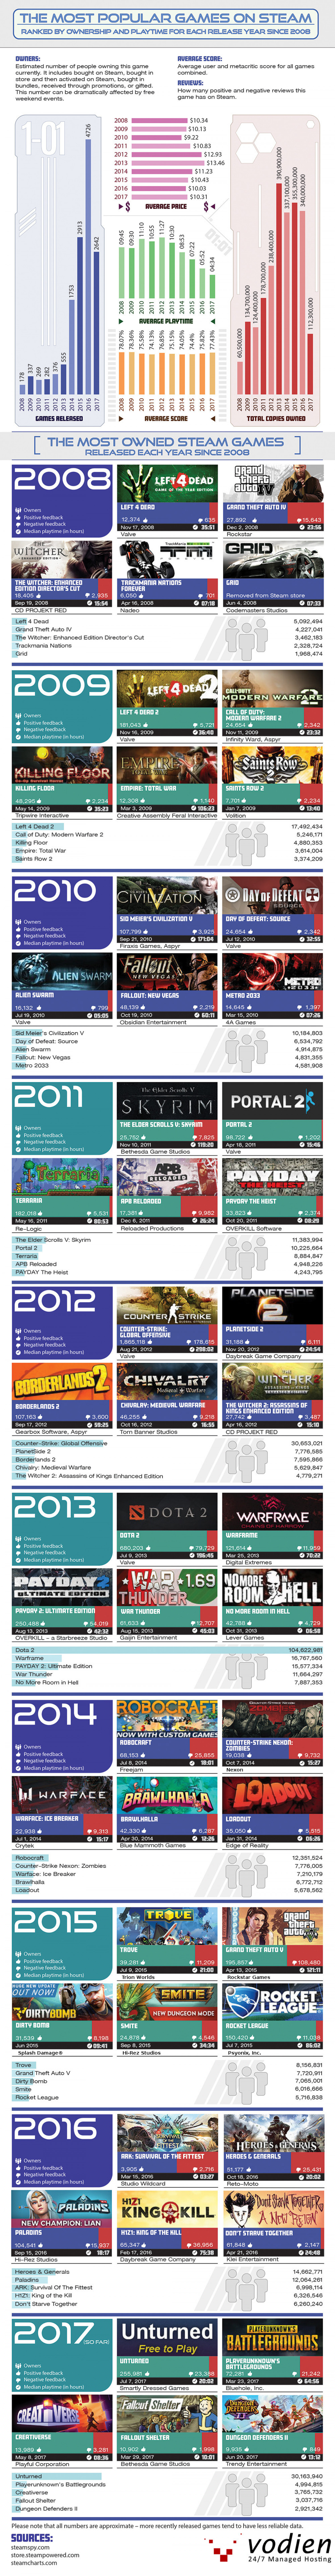 The Most Popular Games On Steam Ranked by Ownership and Playtime for Each Release Year Since 2008 Infographic